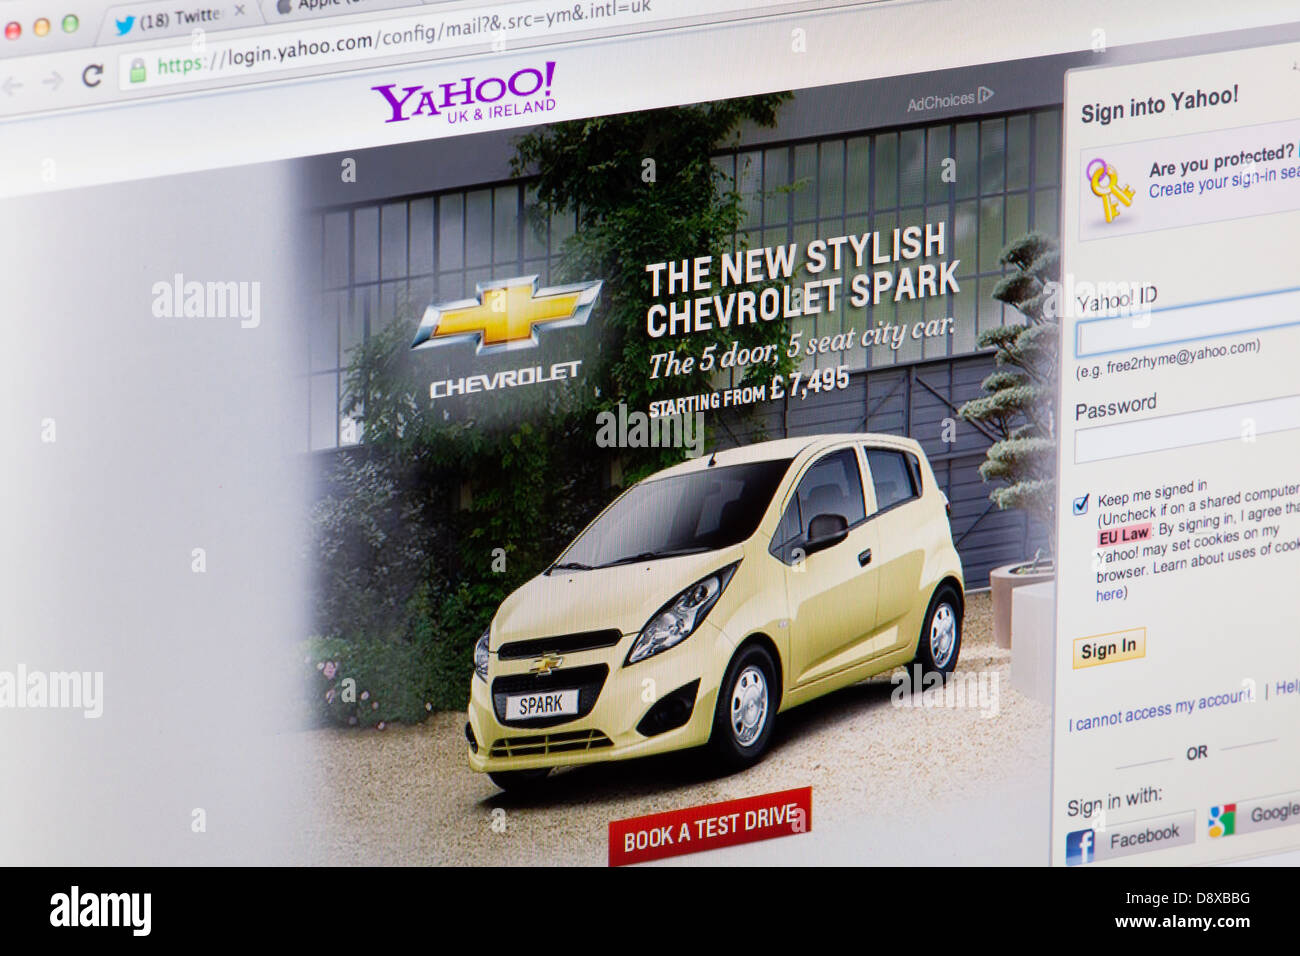 Yahoo Sign in Page Website or web page on a laptop screen or computer monitor - Stock Image